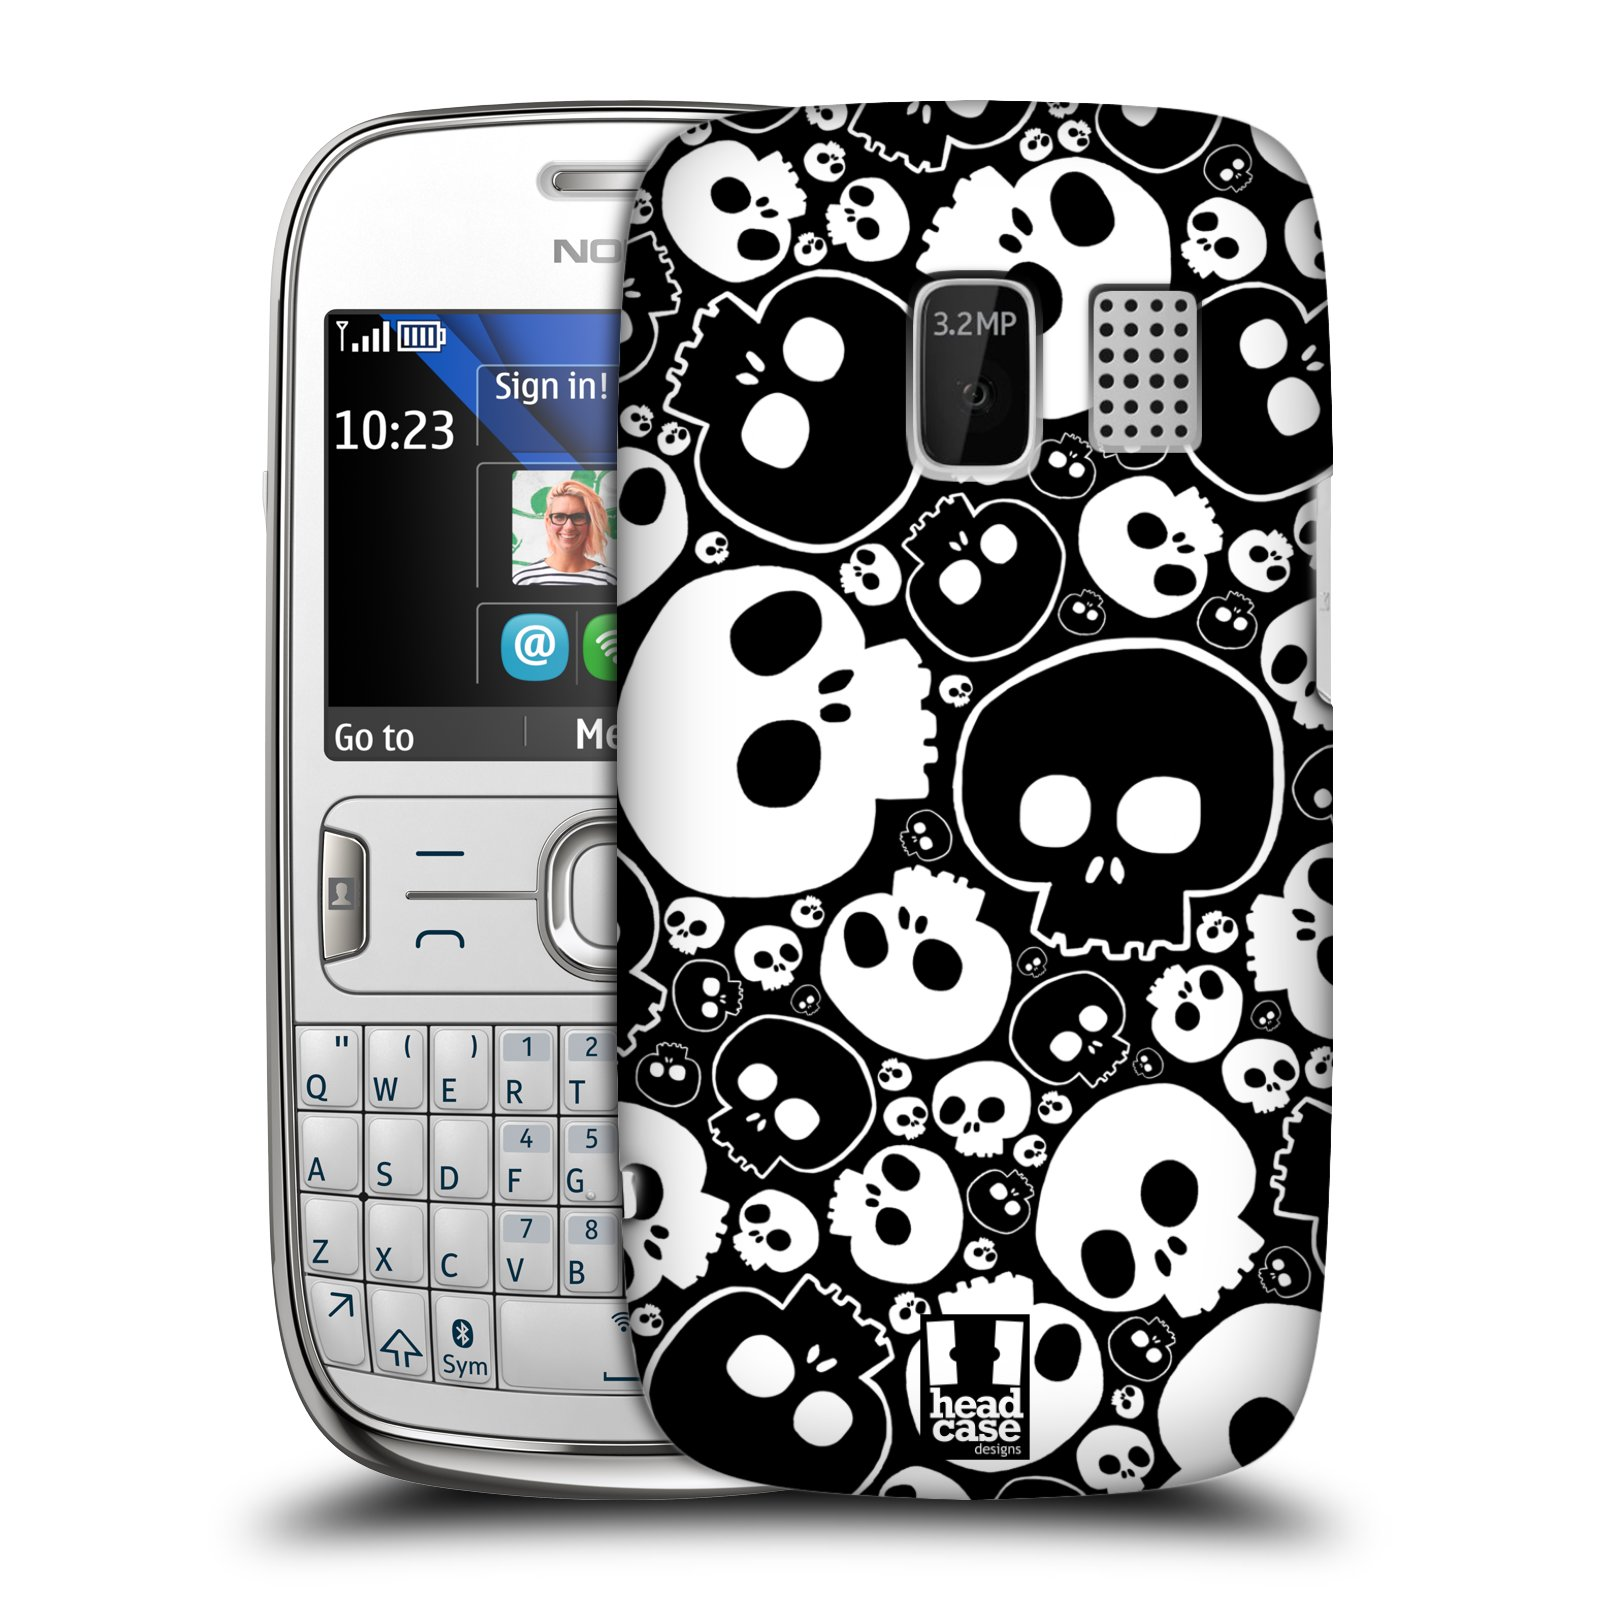 HEAD CASE DESIGNS JAZZY SKULL CASE COVER FOR NOKIA ASHA 302